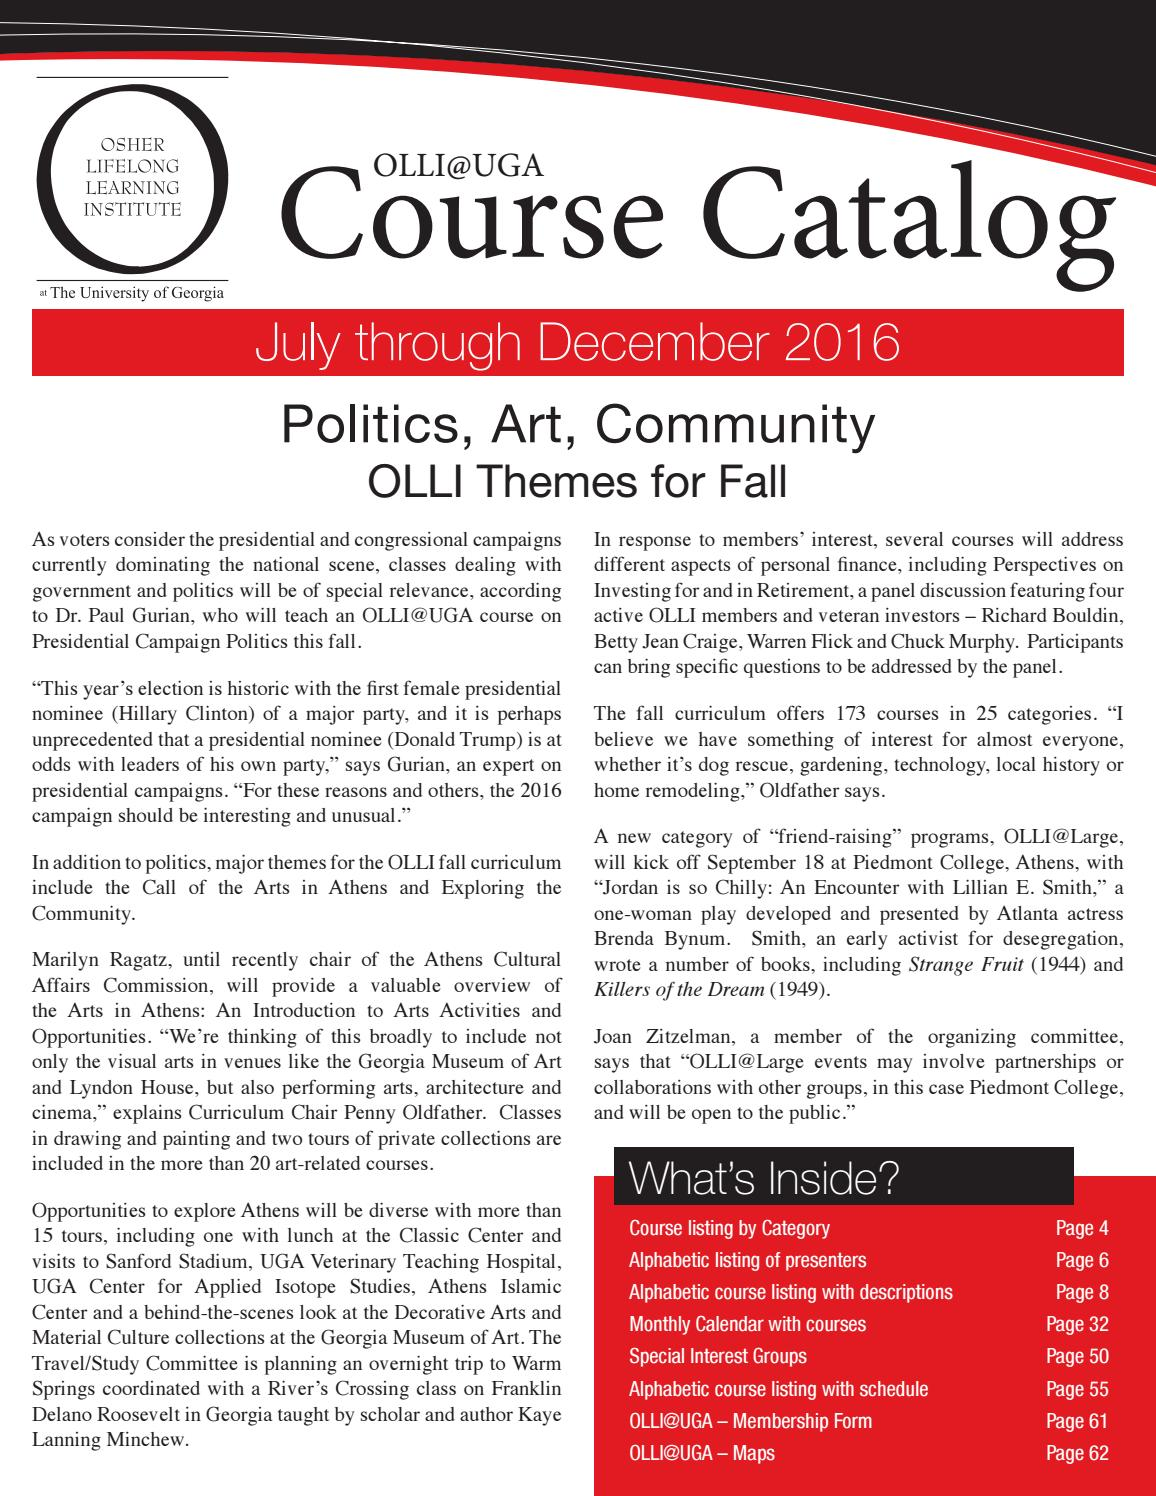 2016 course catalog july december 2016 by University of Georgia